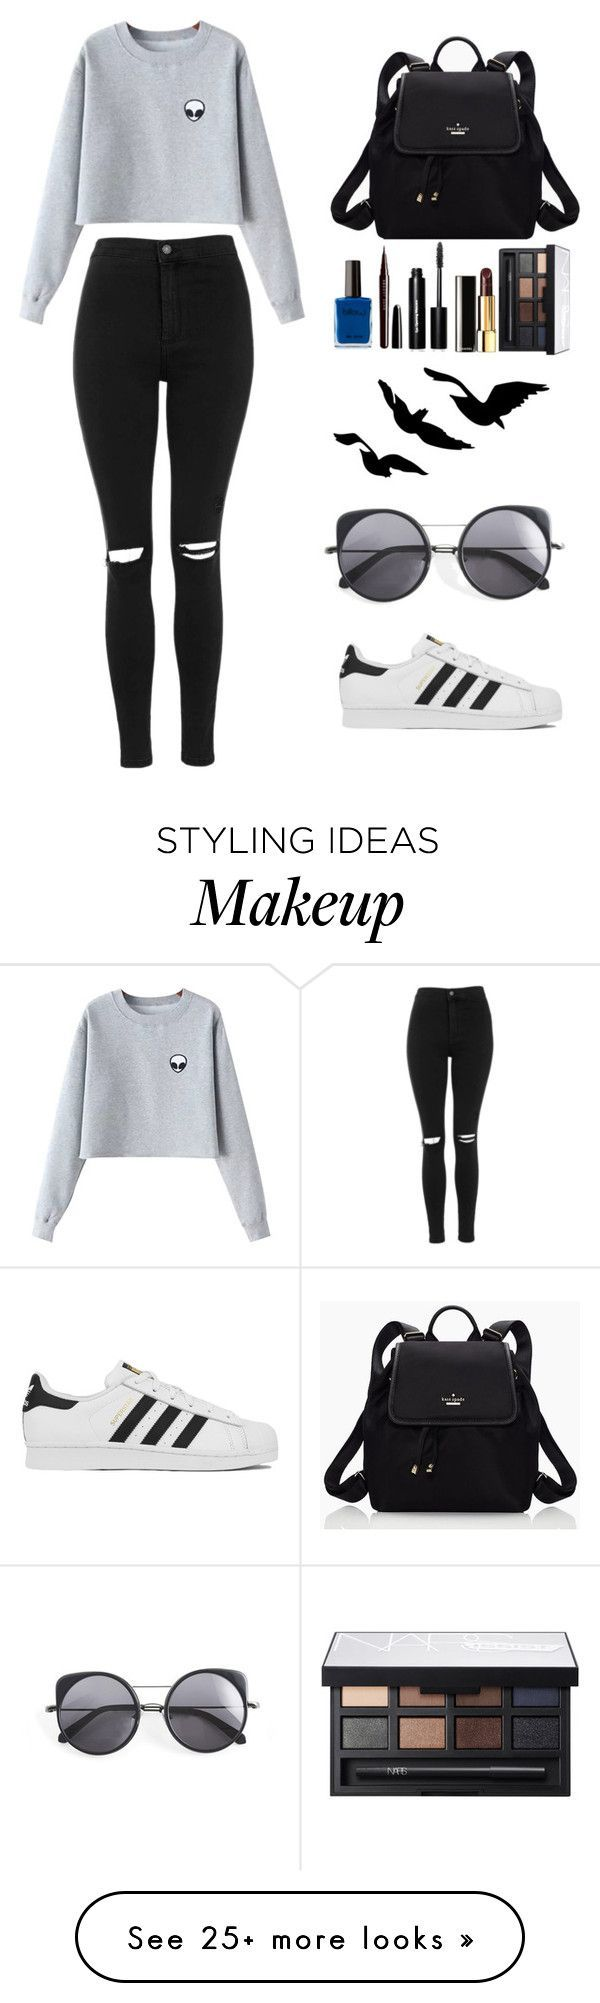 """Untitled #9"" by mischievousblonde on Polyvore featuring Chicnova Fashion, Topshop, adidas, Kate Spade, Marc Jacobs, Bobbi Brown Cosmetics, Chanel, NARS Cosmetics, Wood Wood and women's clothing"